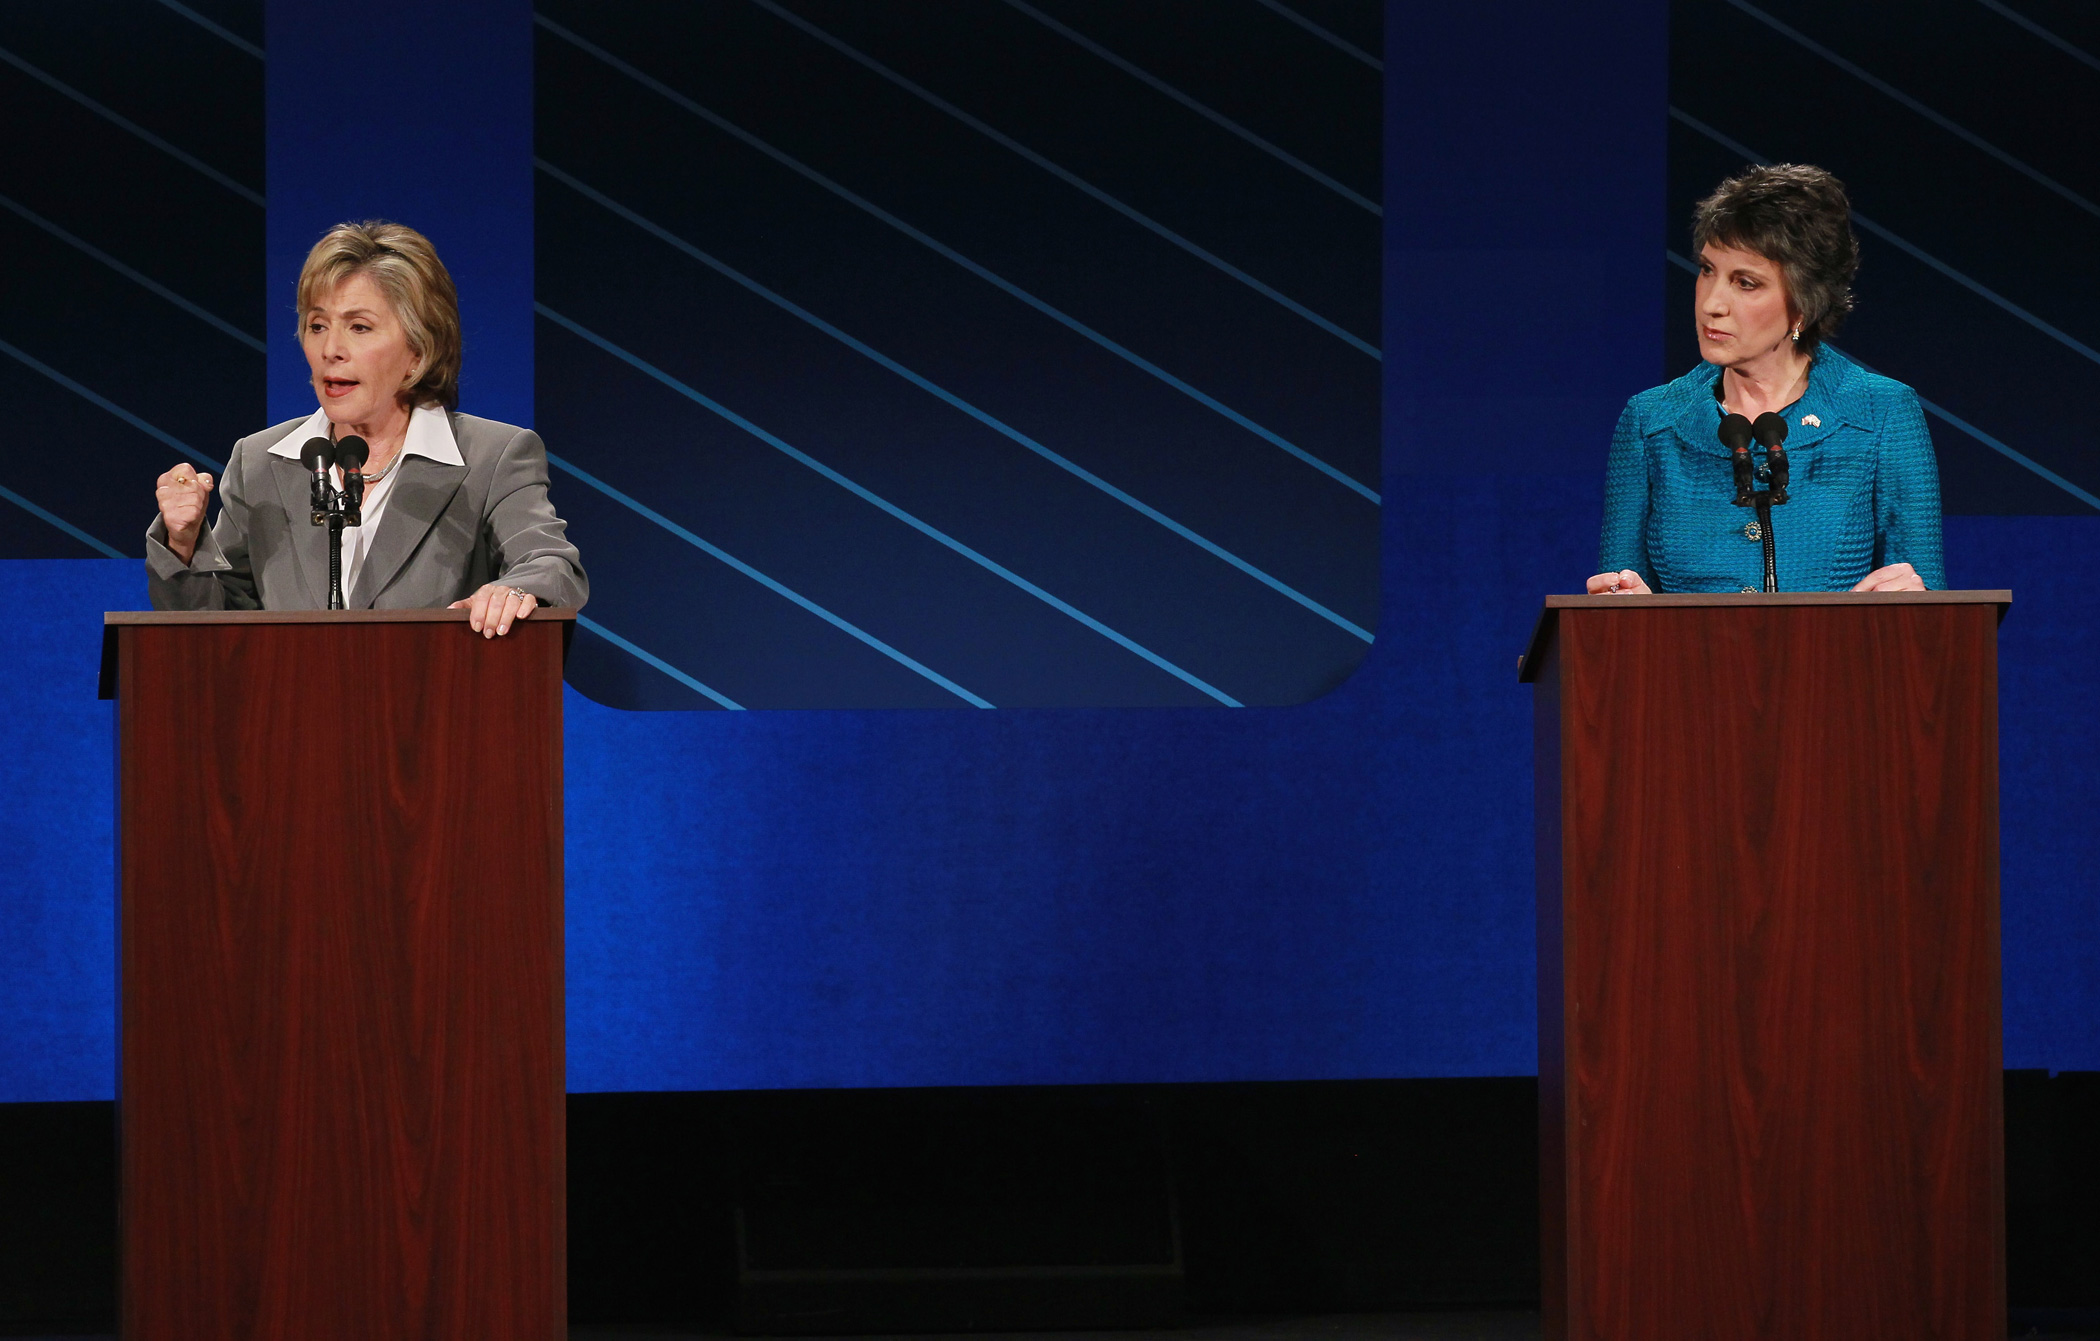 Barbara Boxer speaks as Republican challenger Carly Fiorina looks on during a debate on the campus of Saint Mary's College on Sept. 1, 2010 in Moraga, Calif.